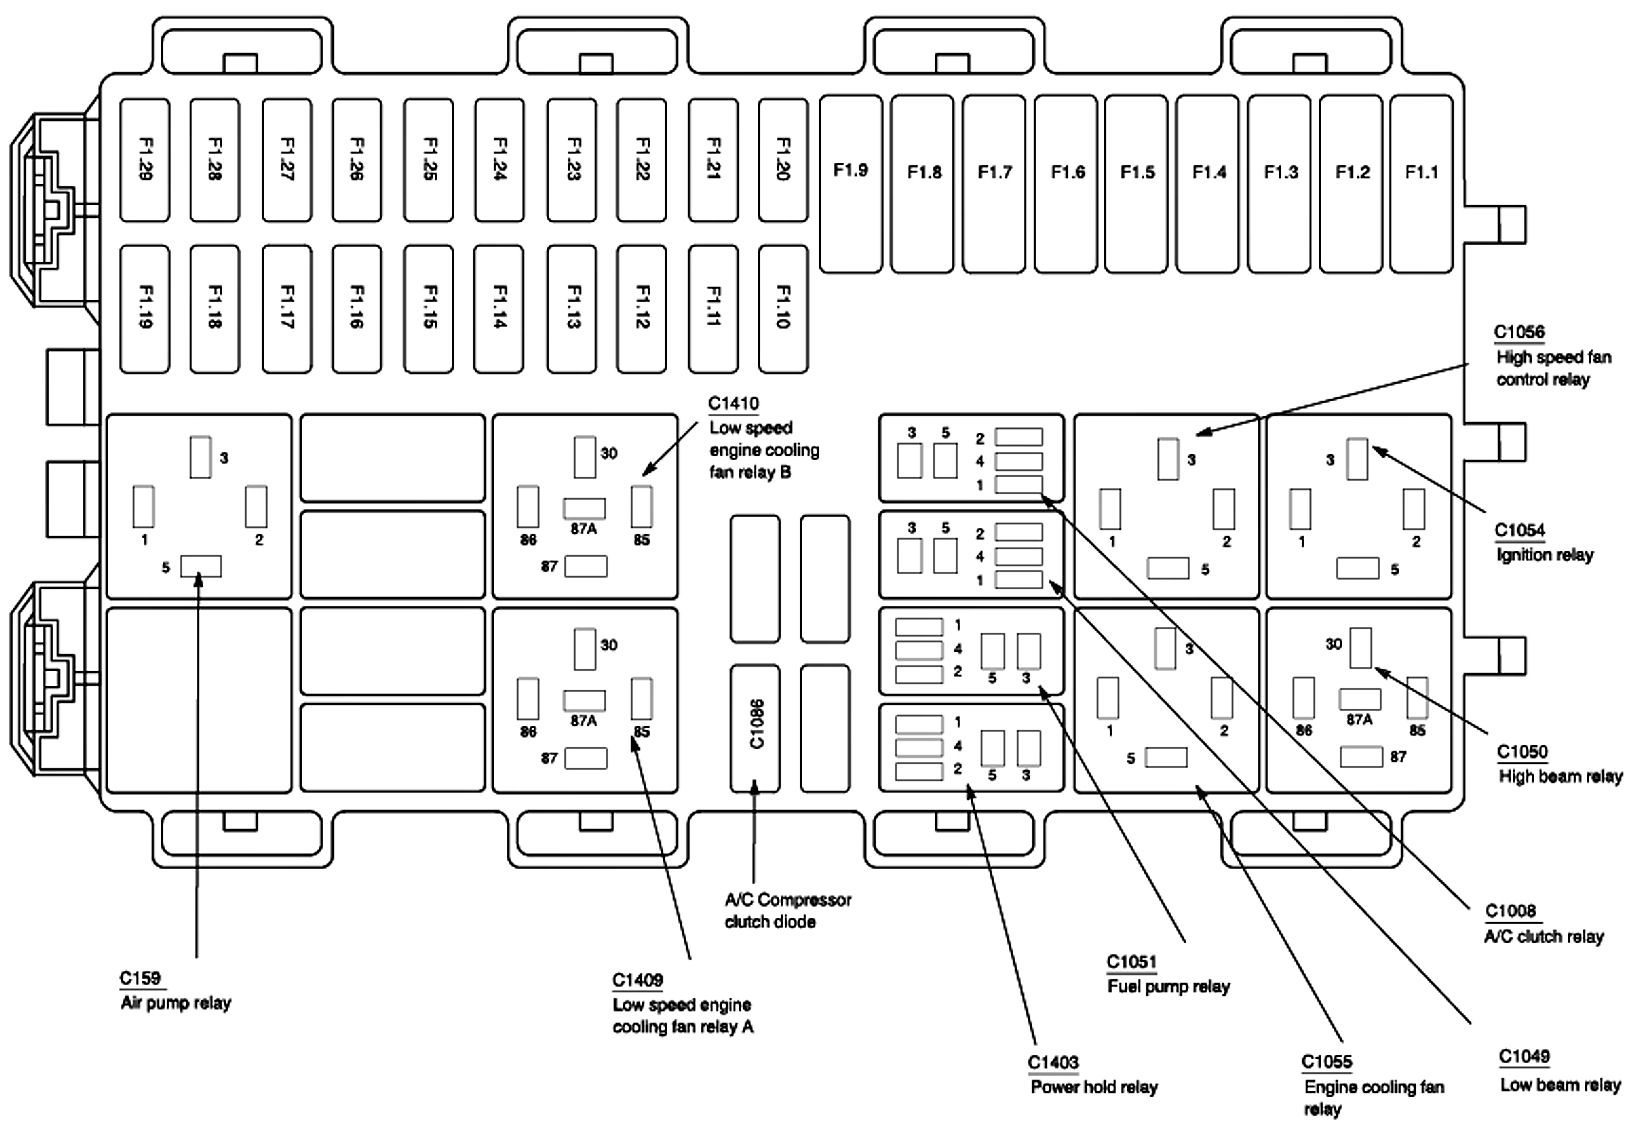 ford focus fuse box diagram DjTuaBX ford focus 2008 fuse box layout 2005 ford freestyle fuse box 2002 Ford Focus Fuse Box Layout at mr168.co